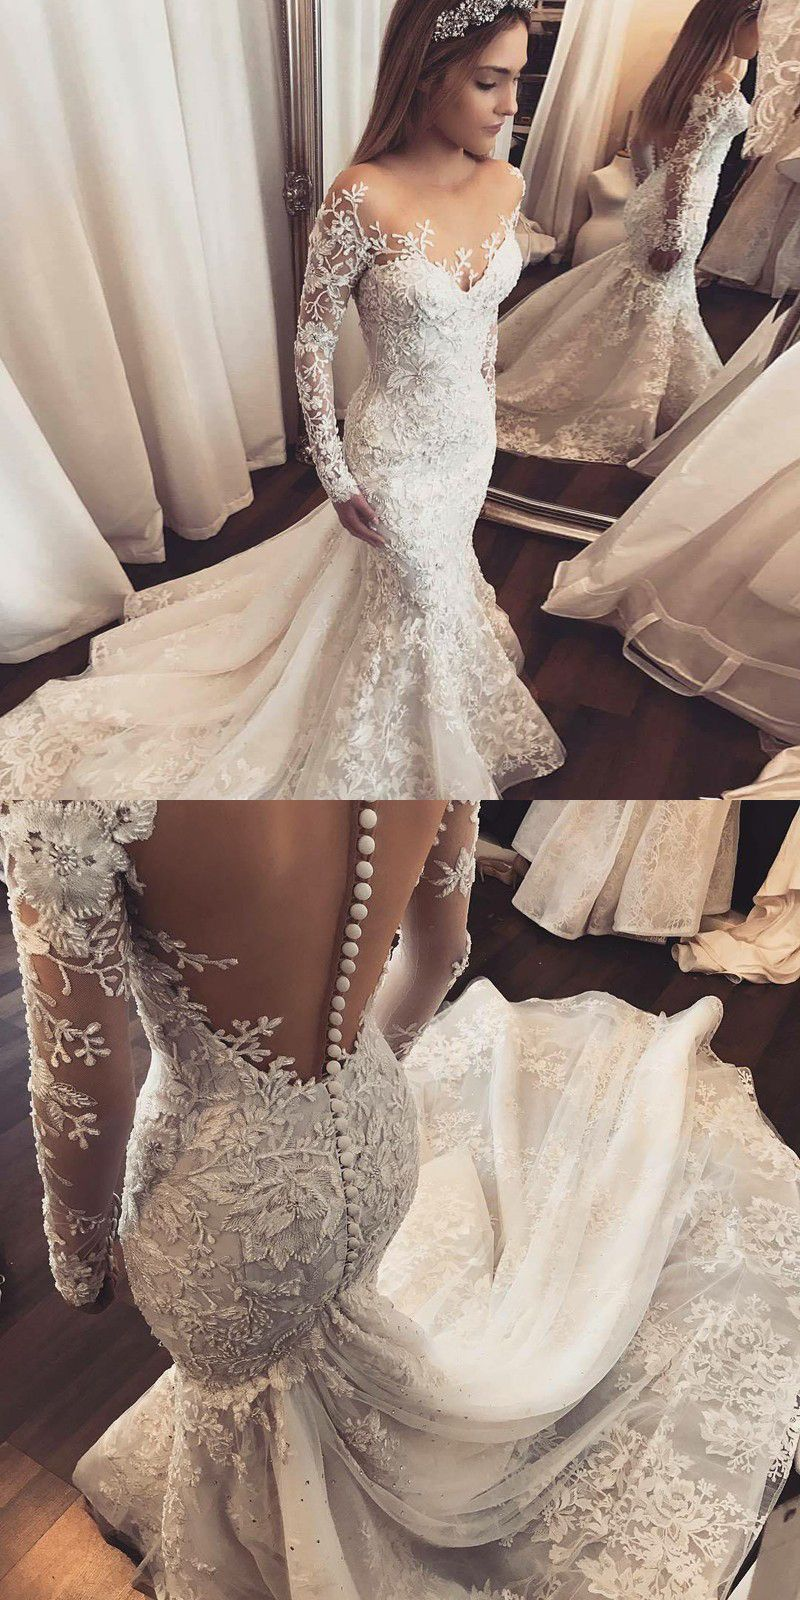 Mermaid wedding dresses with sleeves  Mermaid Wedding DressesIllusion Wedding DressesLong Sleeves